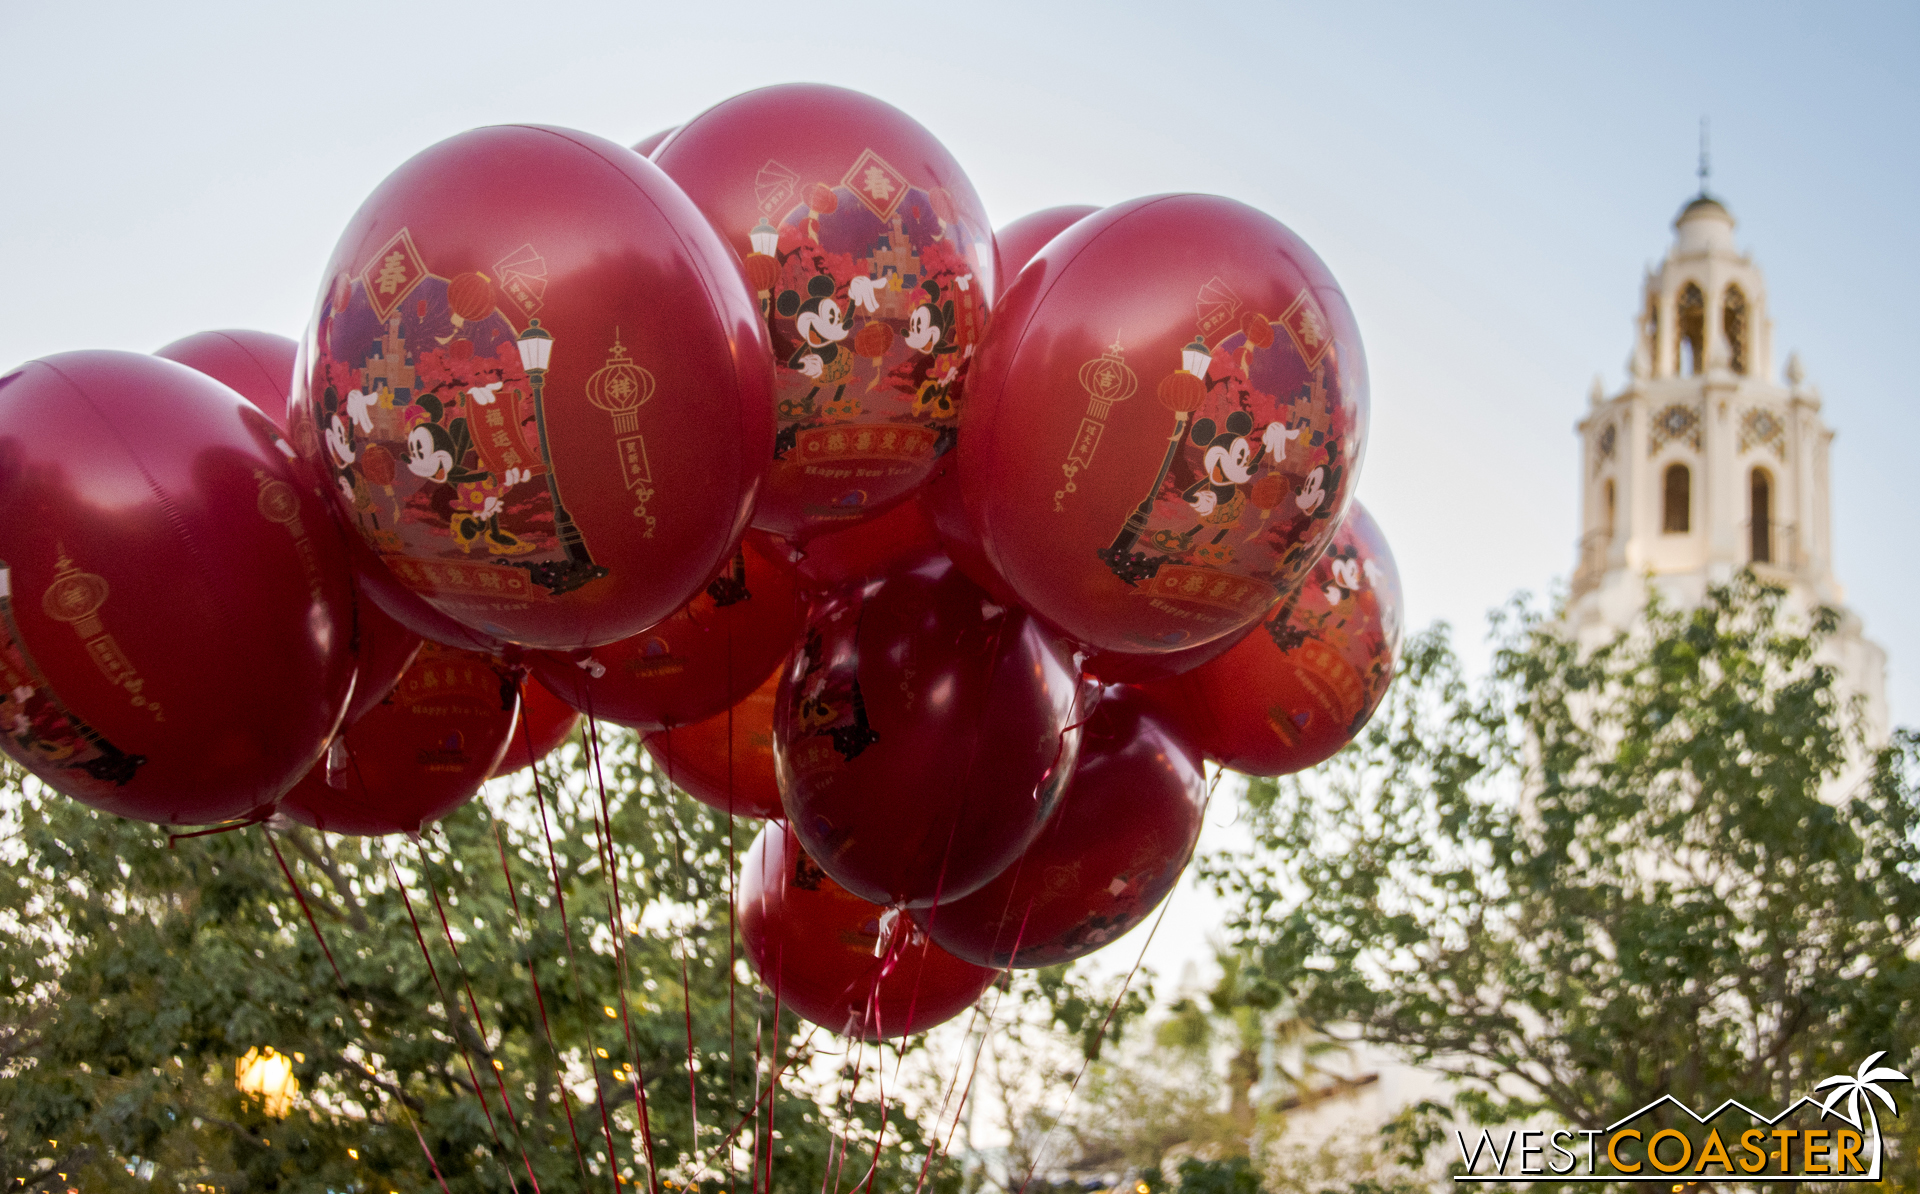 Lunar New Year balloons from Shanghai Disneyland are being sold throughout DCA right now. They're pretty darn cute!